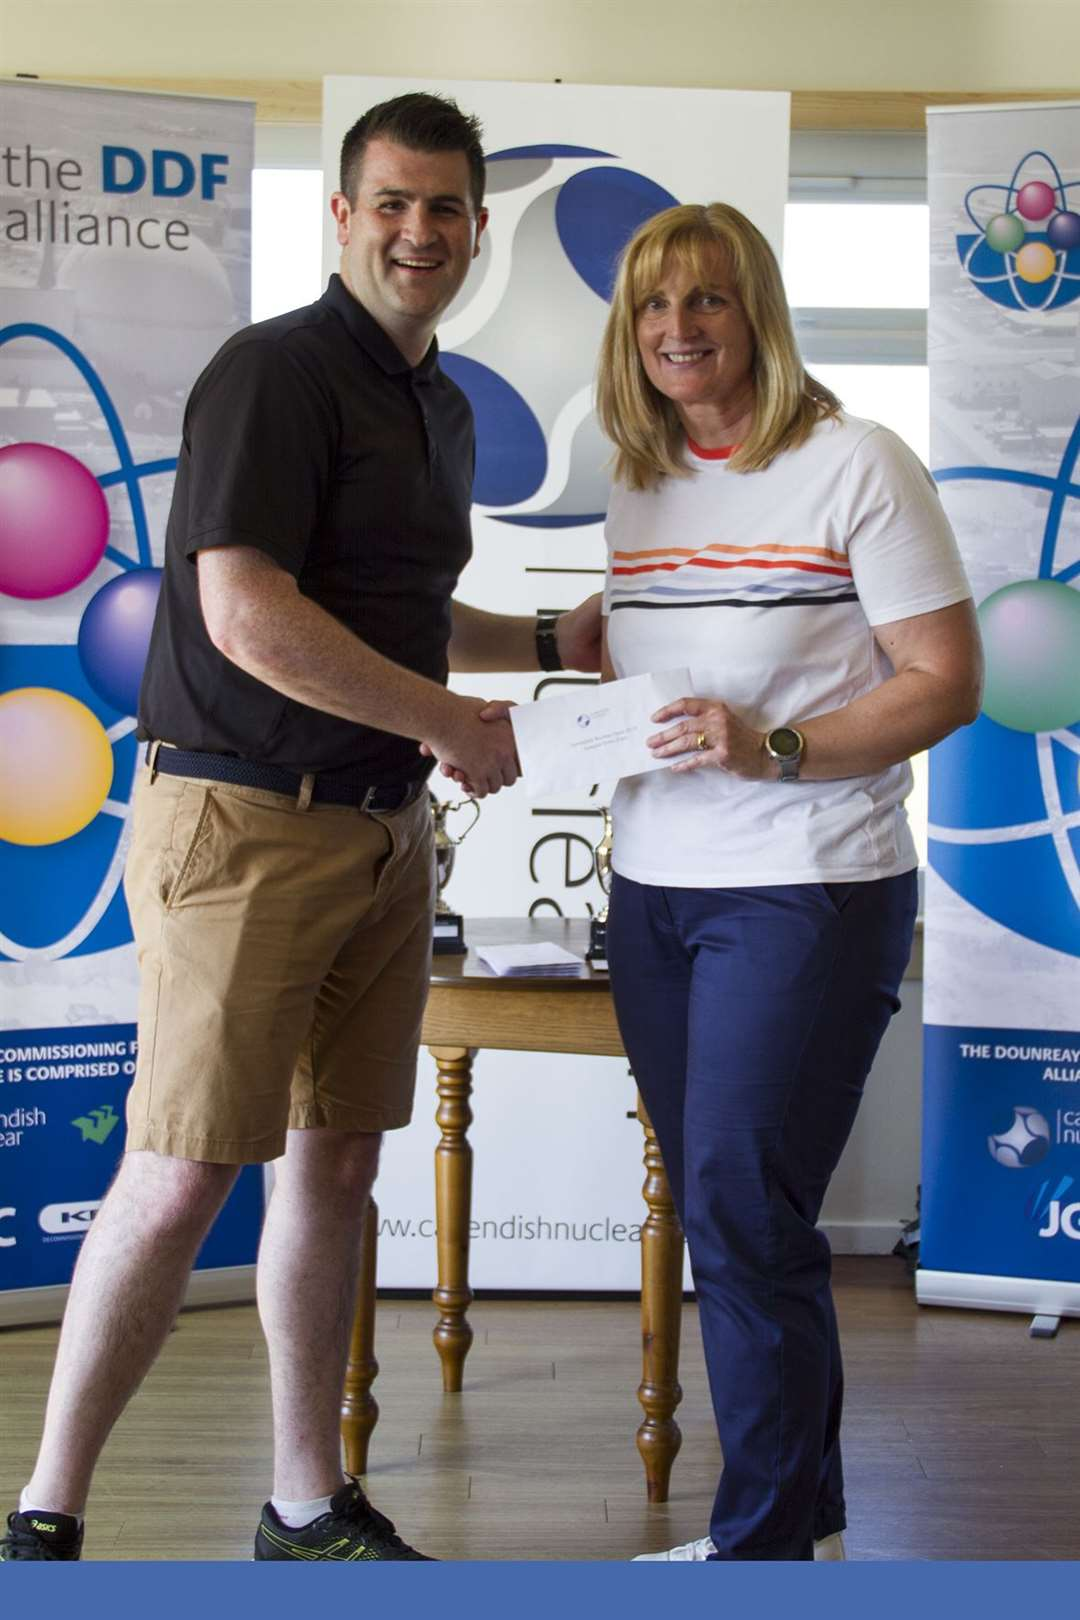 Individual winner Carol Paterson receiving her prize from Loren Jones (Cavendish Nuclear).